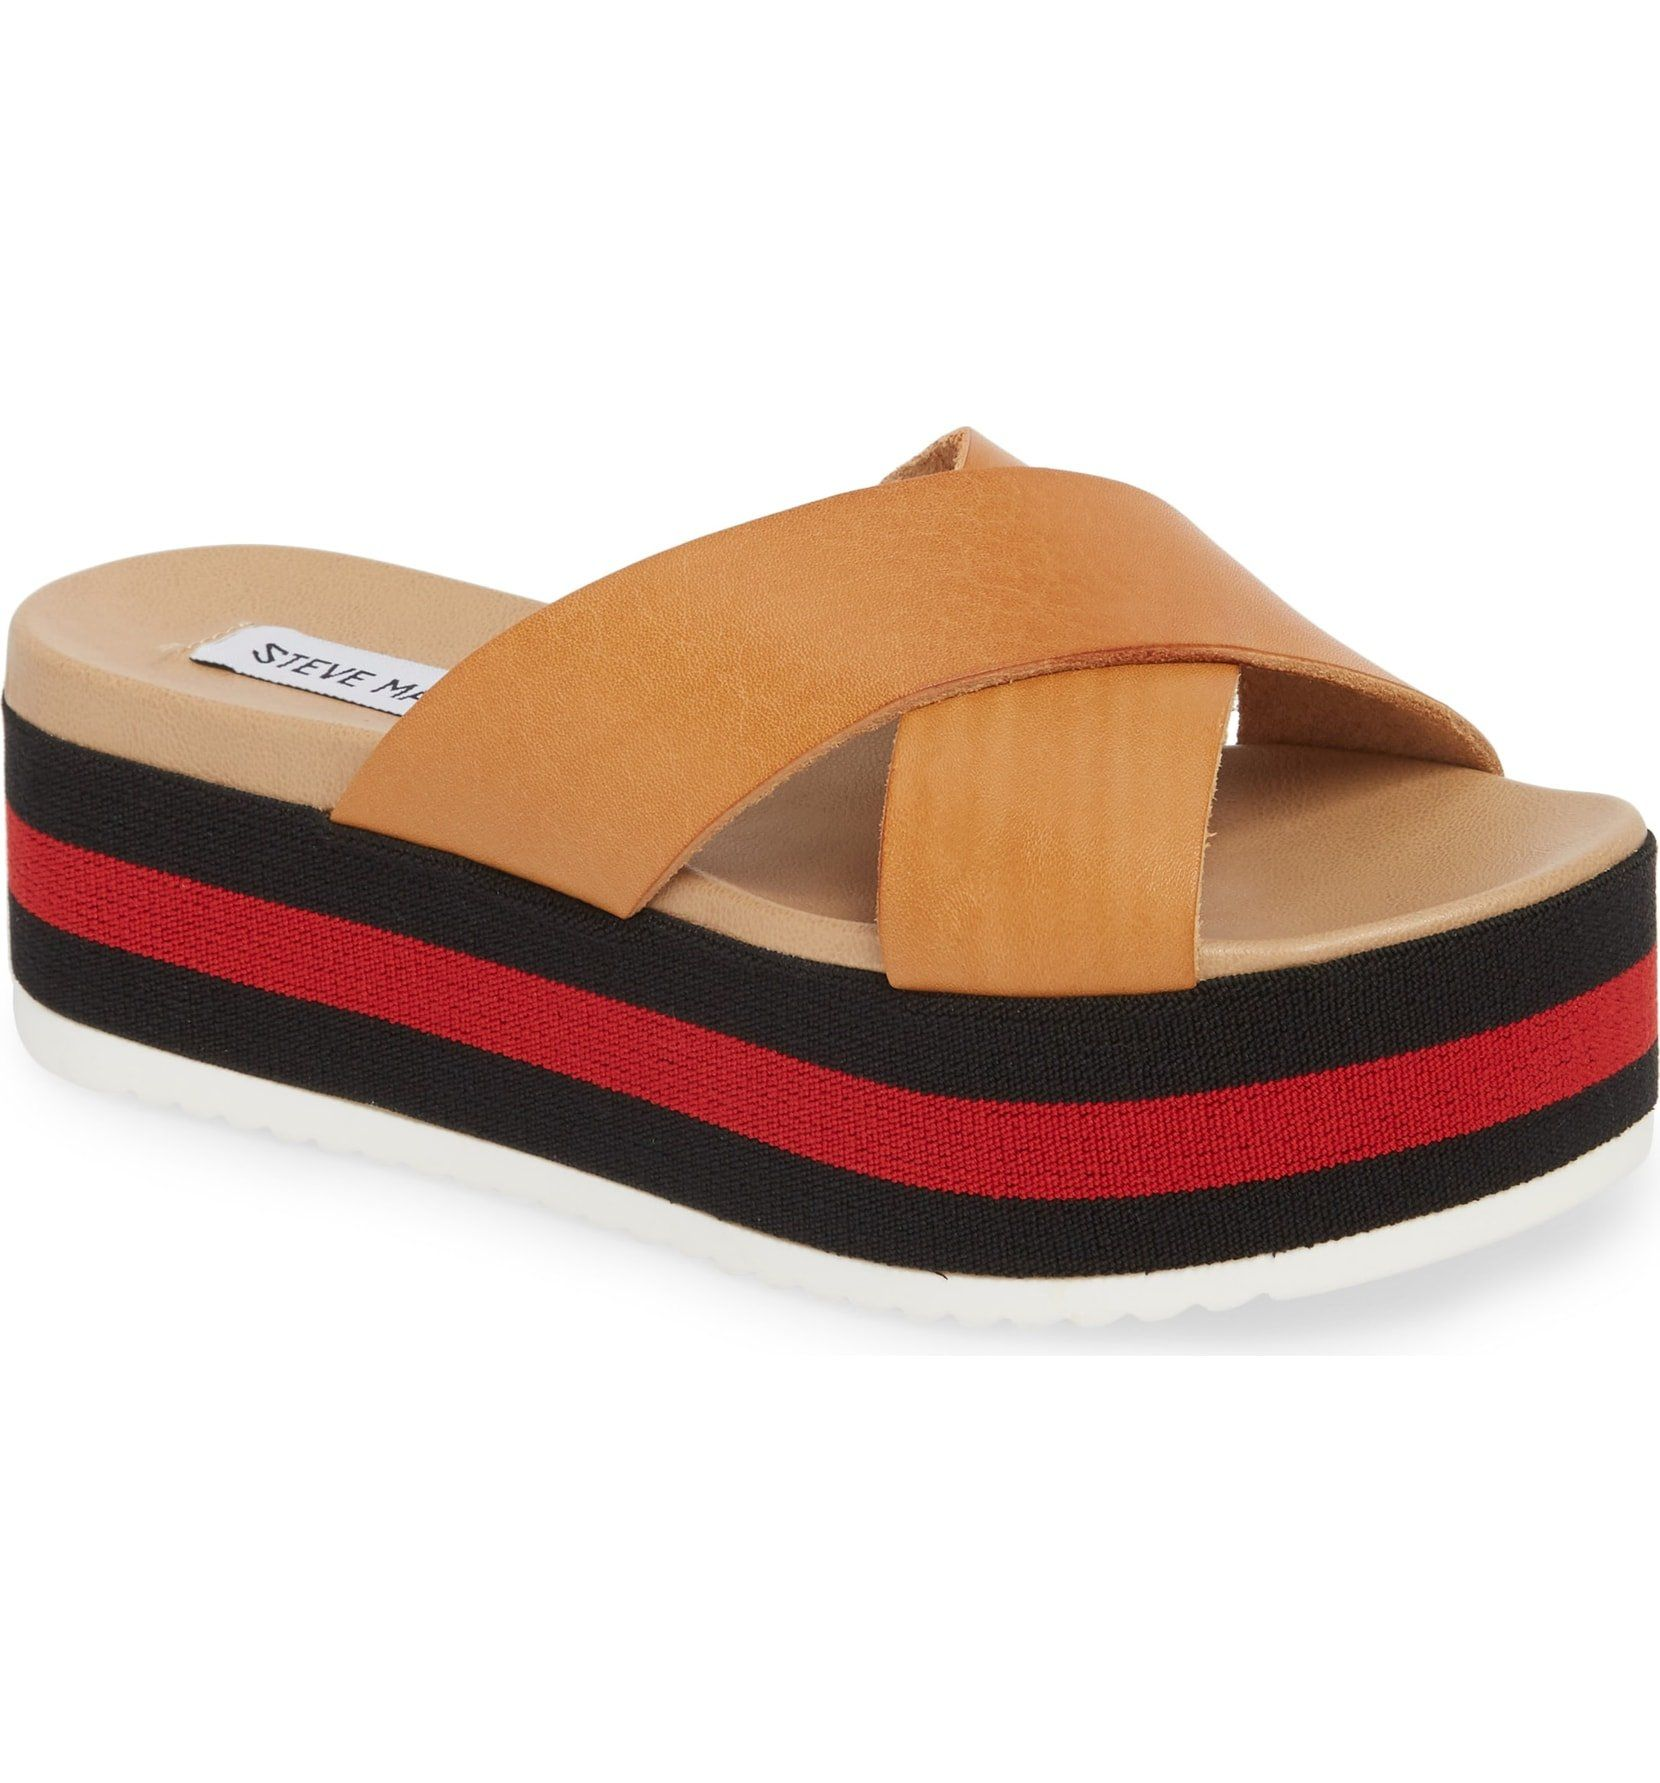 20bdcd9ee53d The Ultimate Guide  41 Cute Sandals You ll Wear Every Single Day of Summer